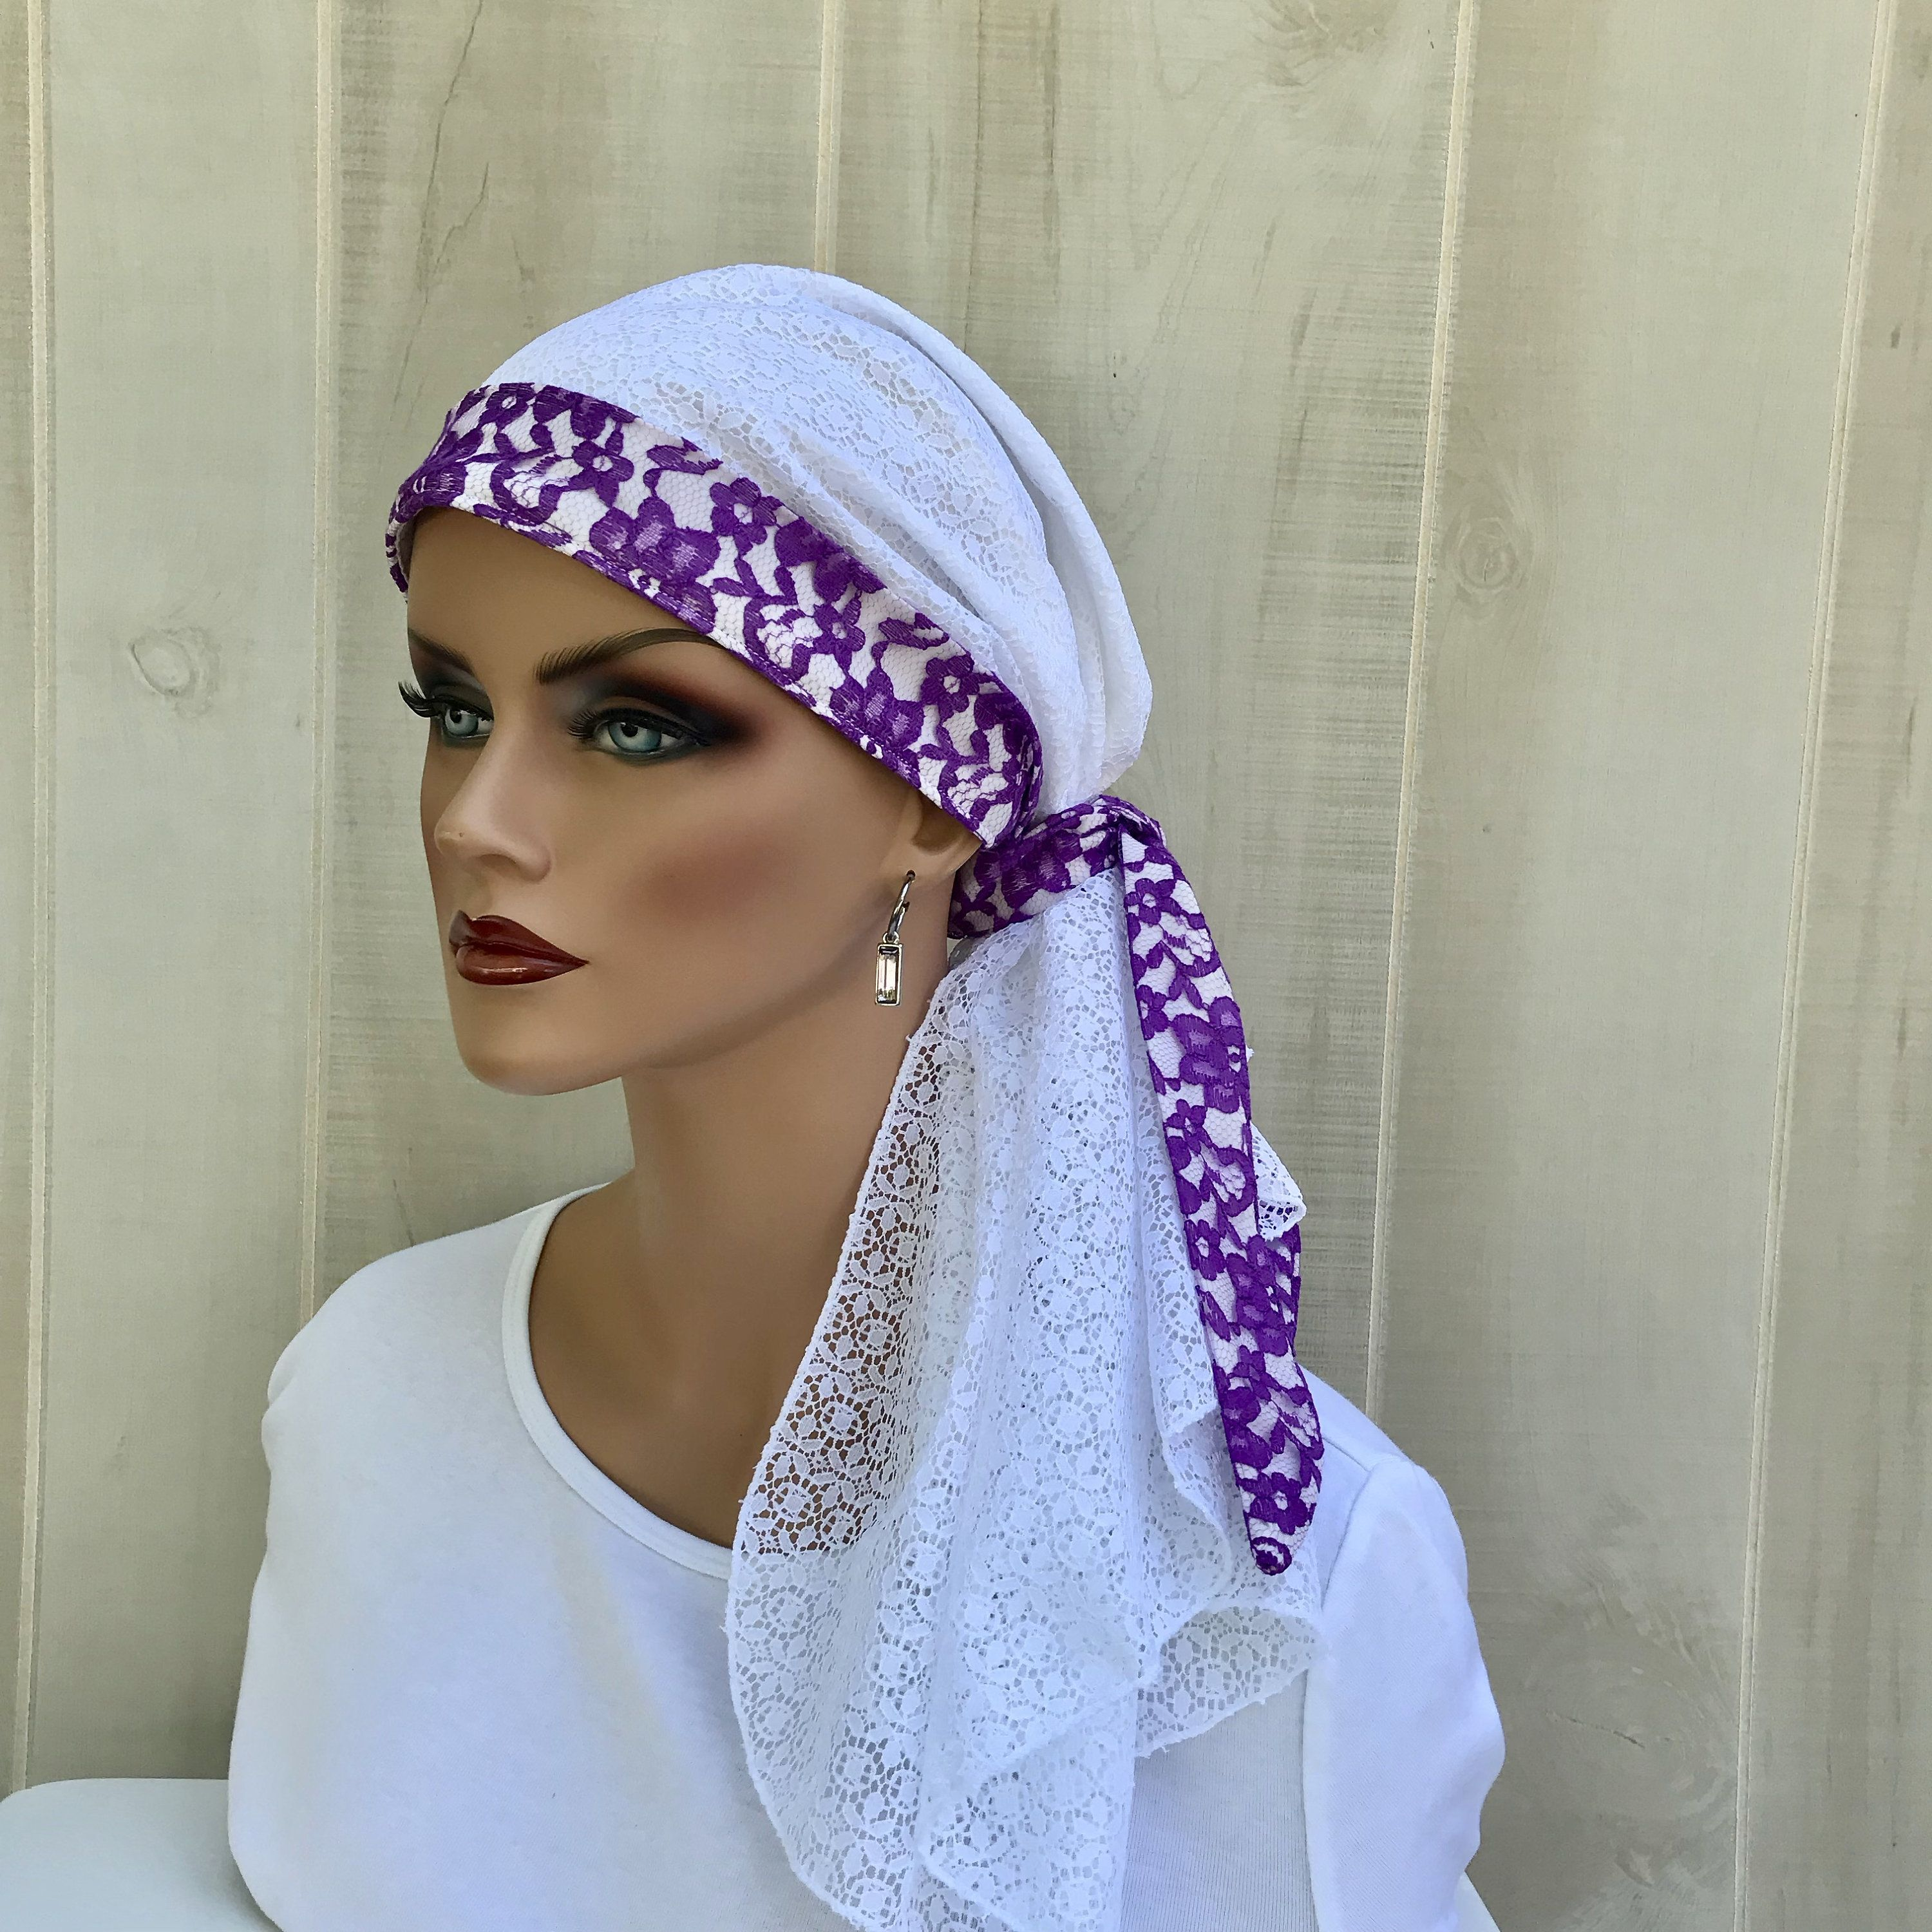 August Sale...Buy $30, Save 20%. This is our 'Carlee' #PreTied #HeadScarf For #Women With #HairLoss. #Cancer #Headwear #ChemoHats #HeadCover #Alopecia #Hat #HeadWrap #HairWrap #Turban #White  #Purple #Lace #LaceHeadWrap #Wedding #Bridal #LovemyIHC #InspirationalHeadCoverings #tieheadscarves